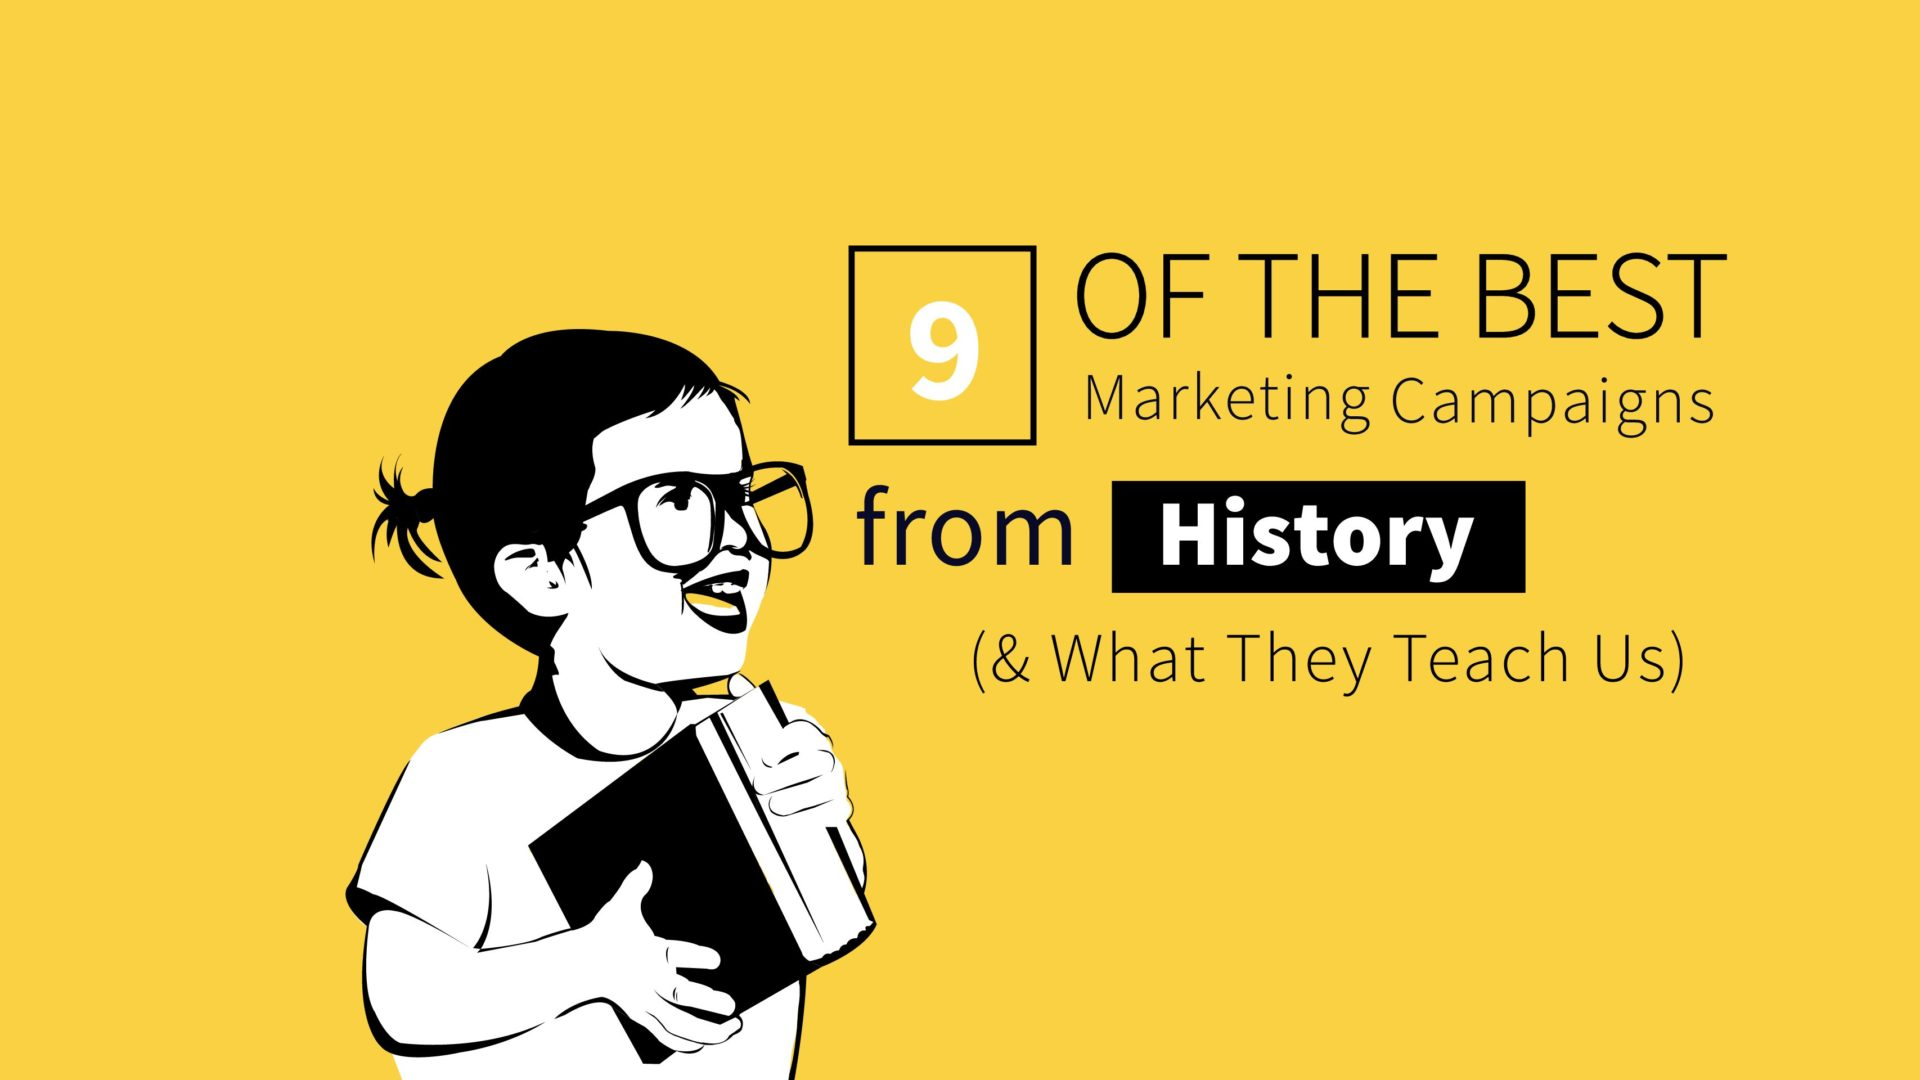 9 Of the Best Marketing Campaigns in History (And What They Teach Us)